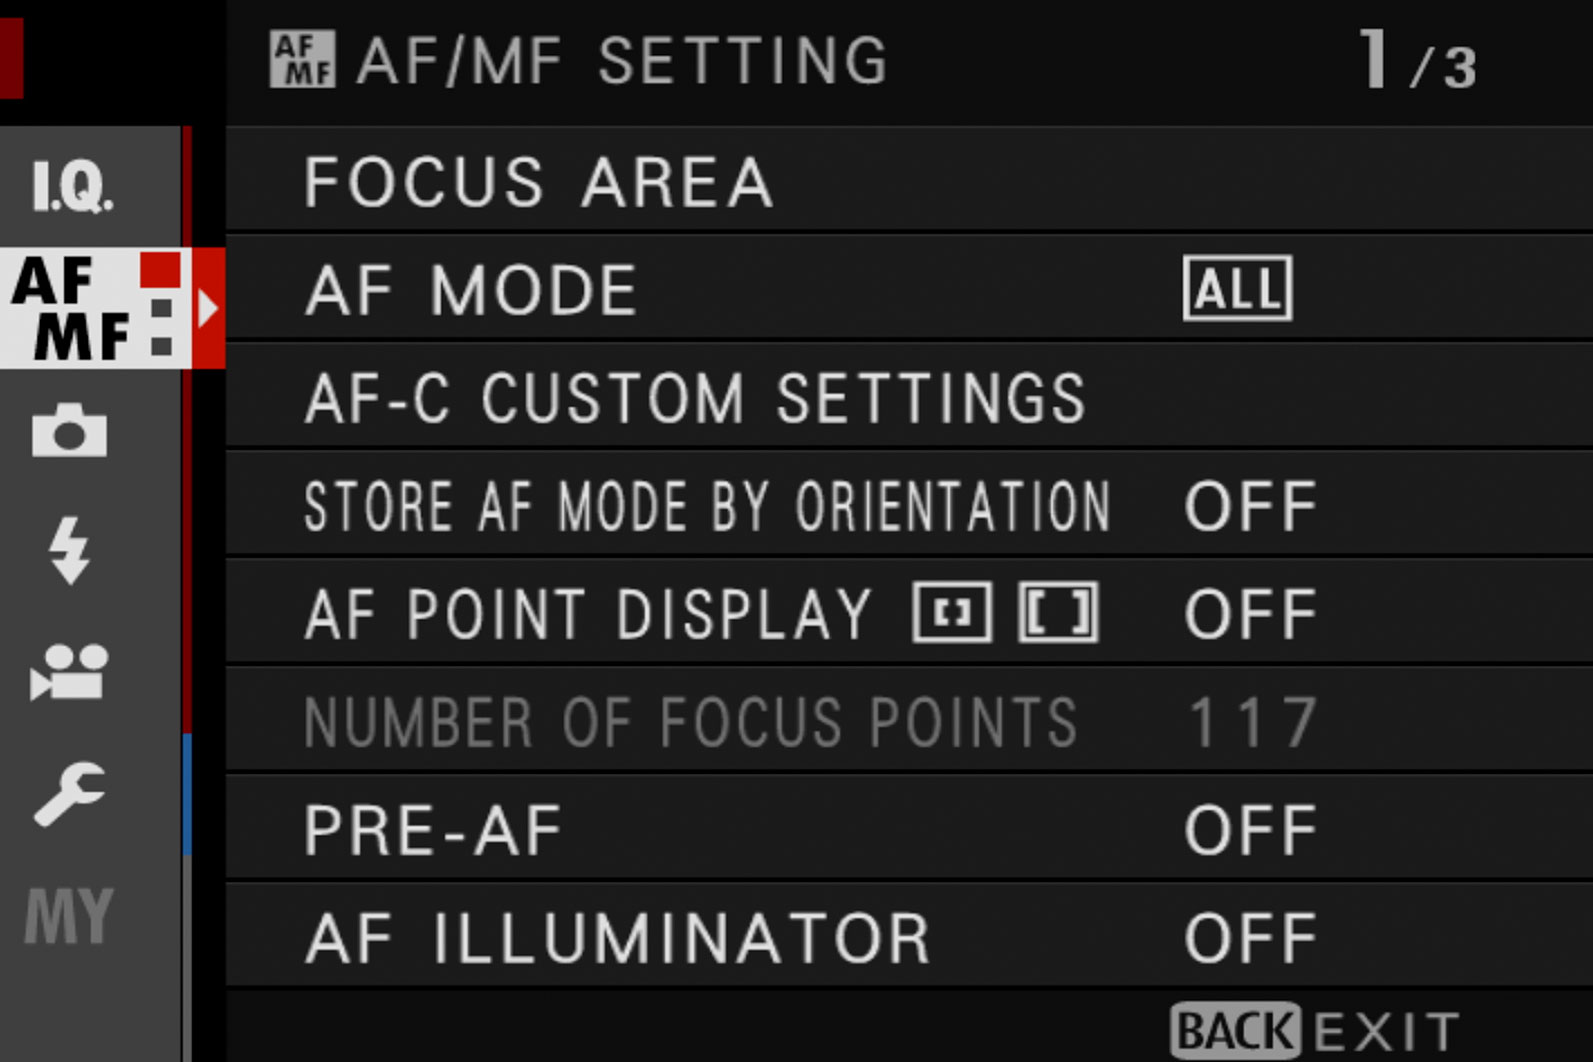 Fujifilm Gfx50s And Gfx50r Settings And 30 000 Frame Review